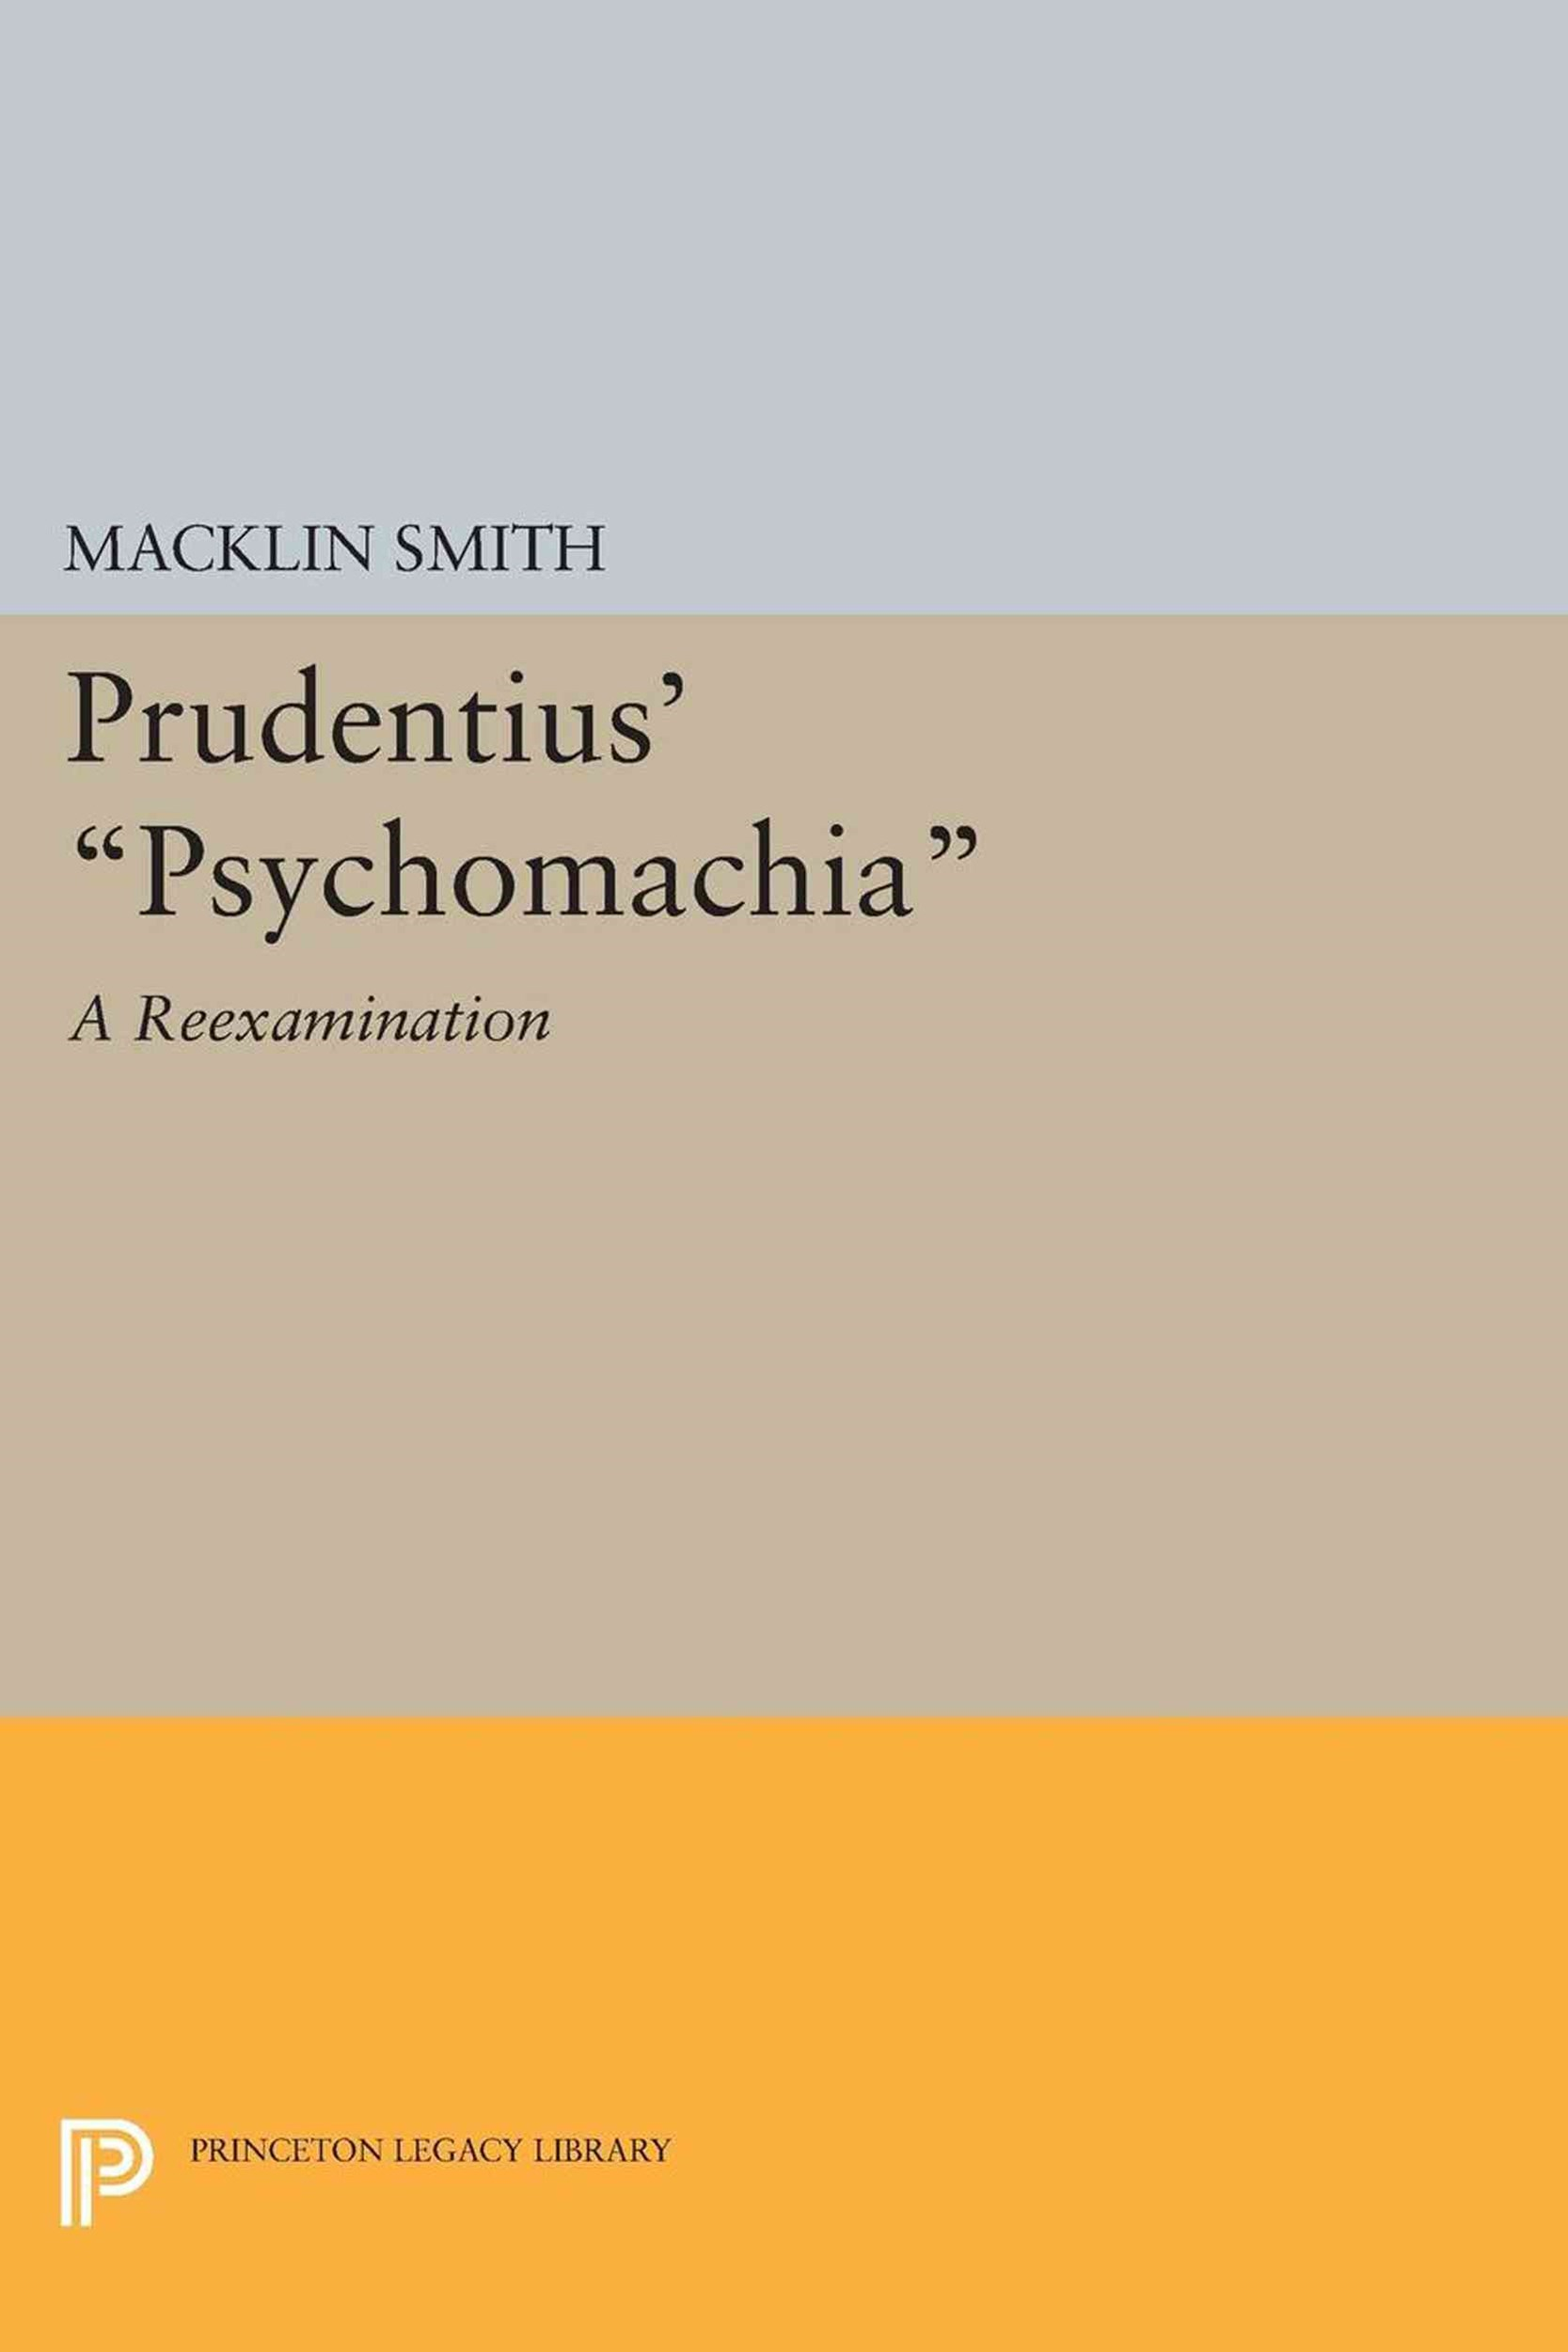 Prudentius' &quote;Psychomachia&quote;